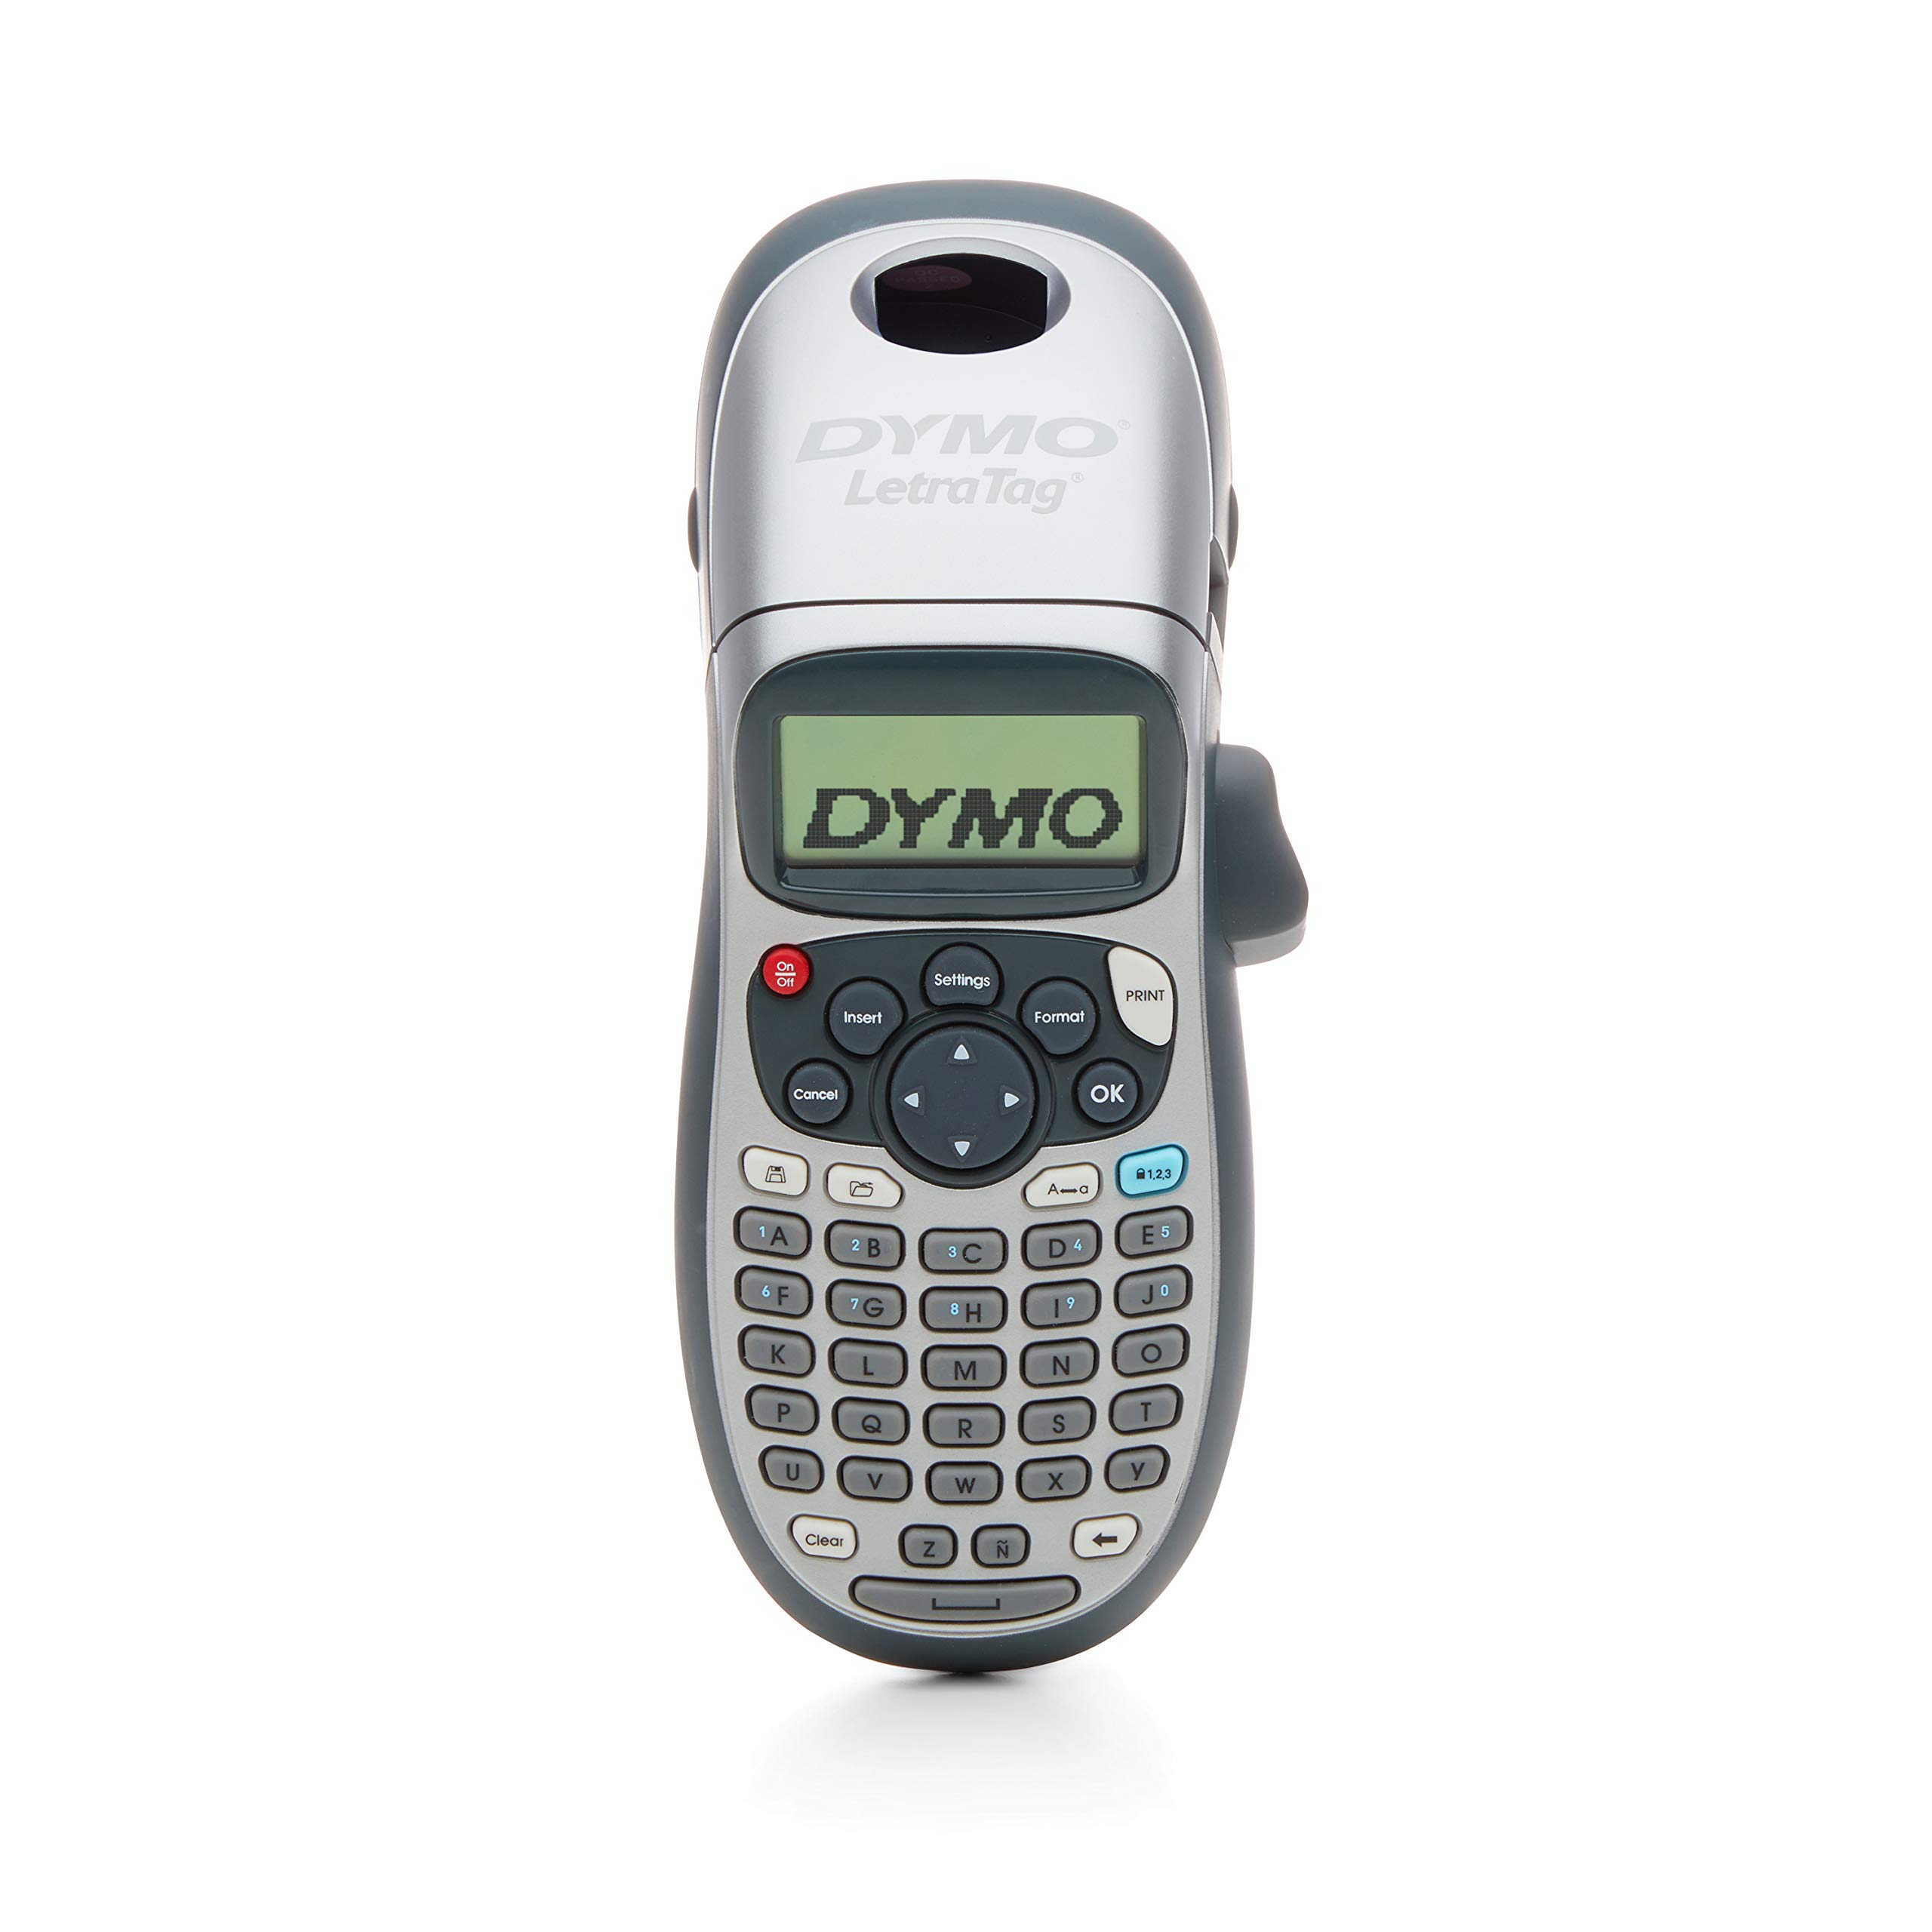 DYMO LetraTag 100H Plus Handheld Label Maker for Office or Home 1 Pack